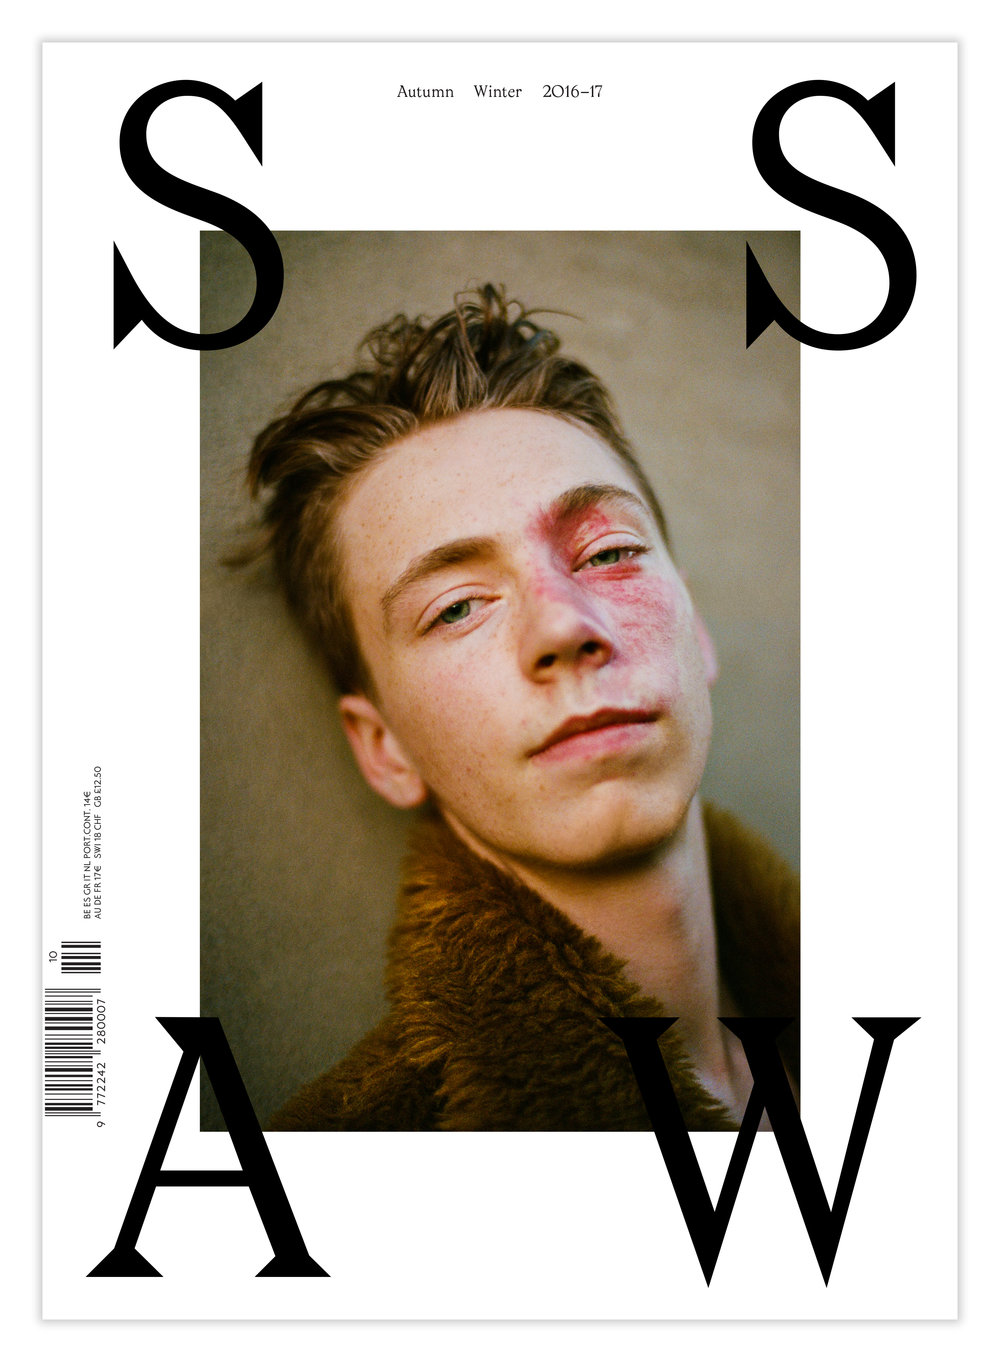 SSAW Autumn Winter 2016-2017. Photography by Matt Lambert, styling Tuomas Laitinen. Courtesy of SSAW.